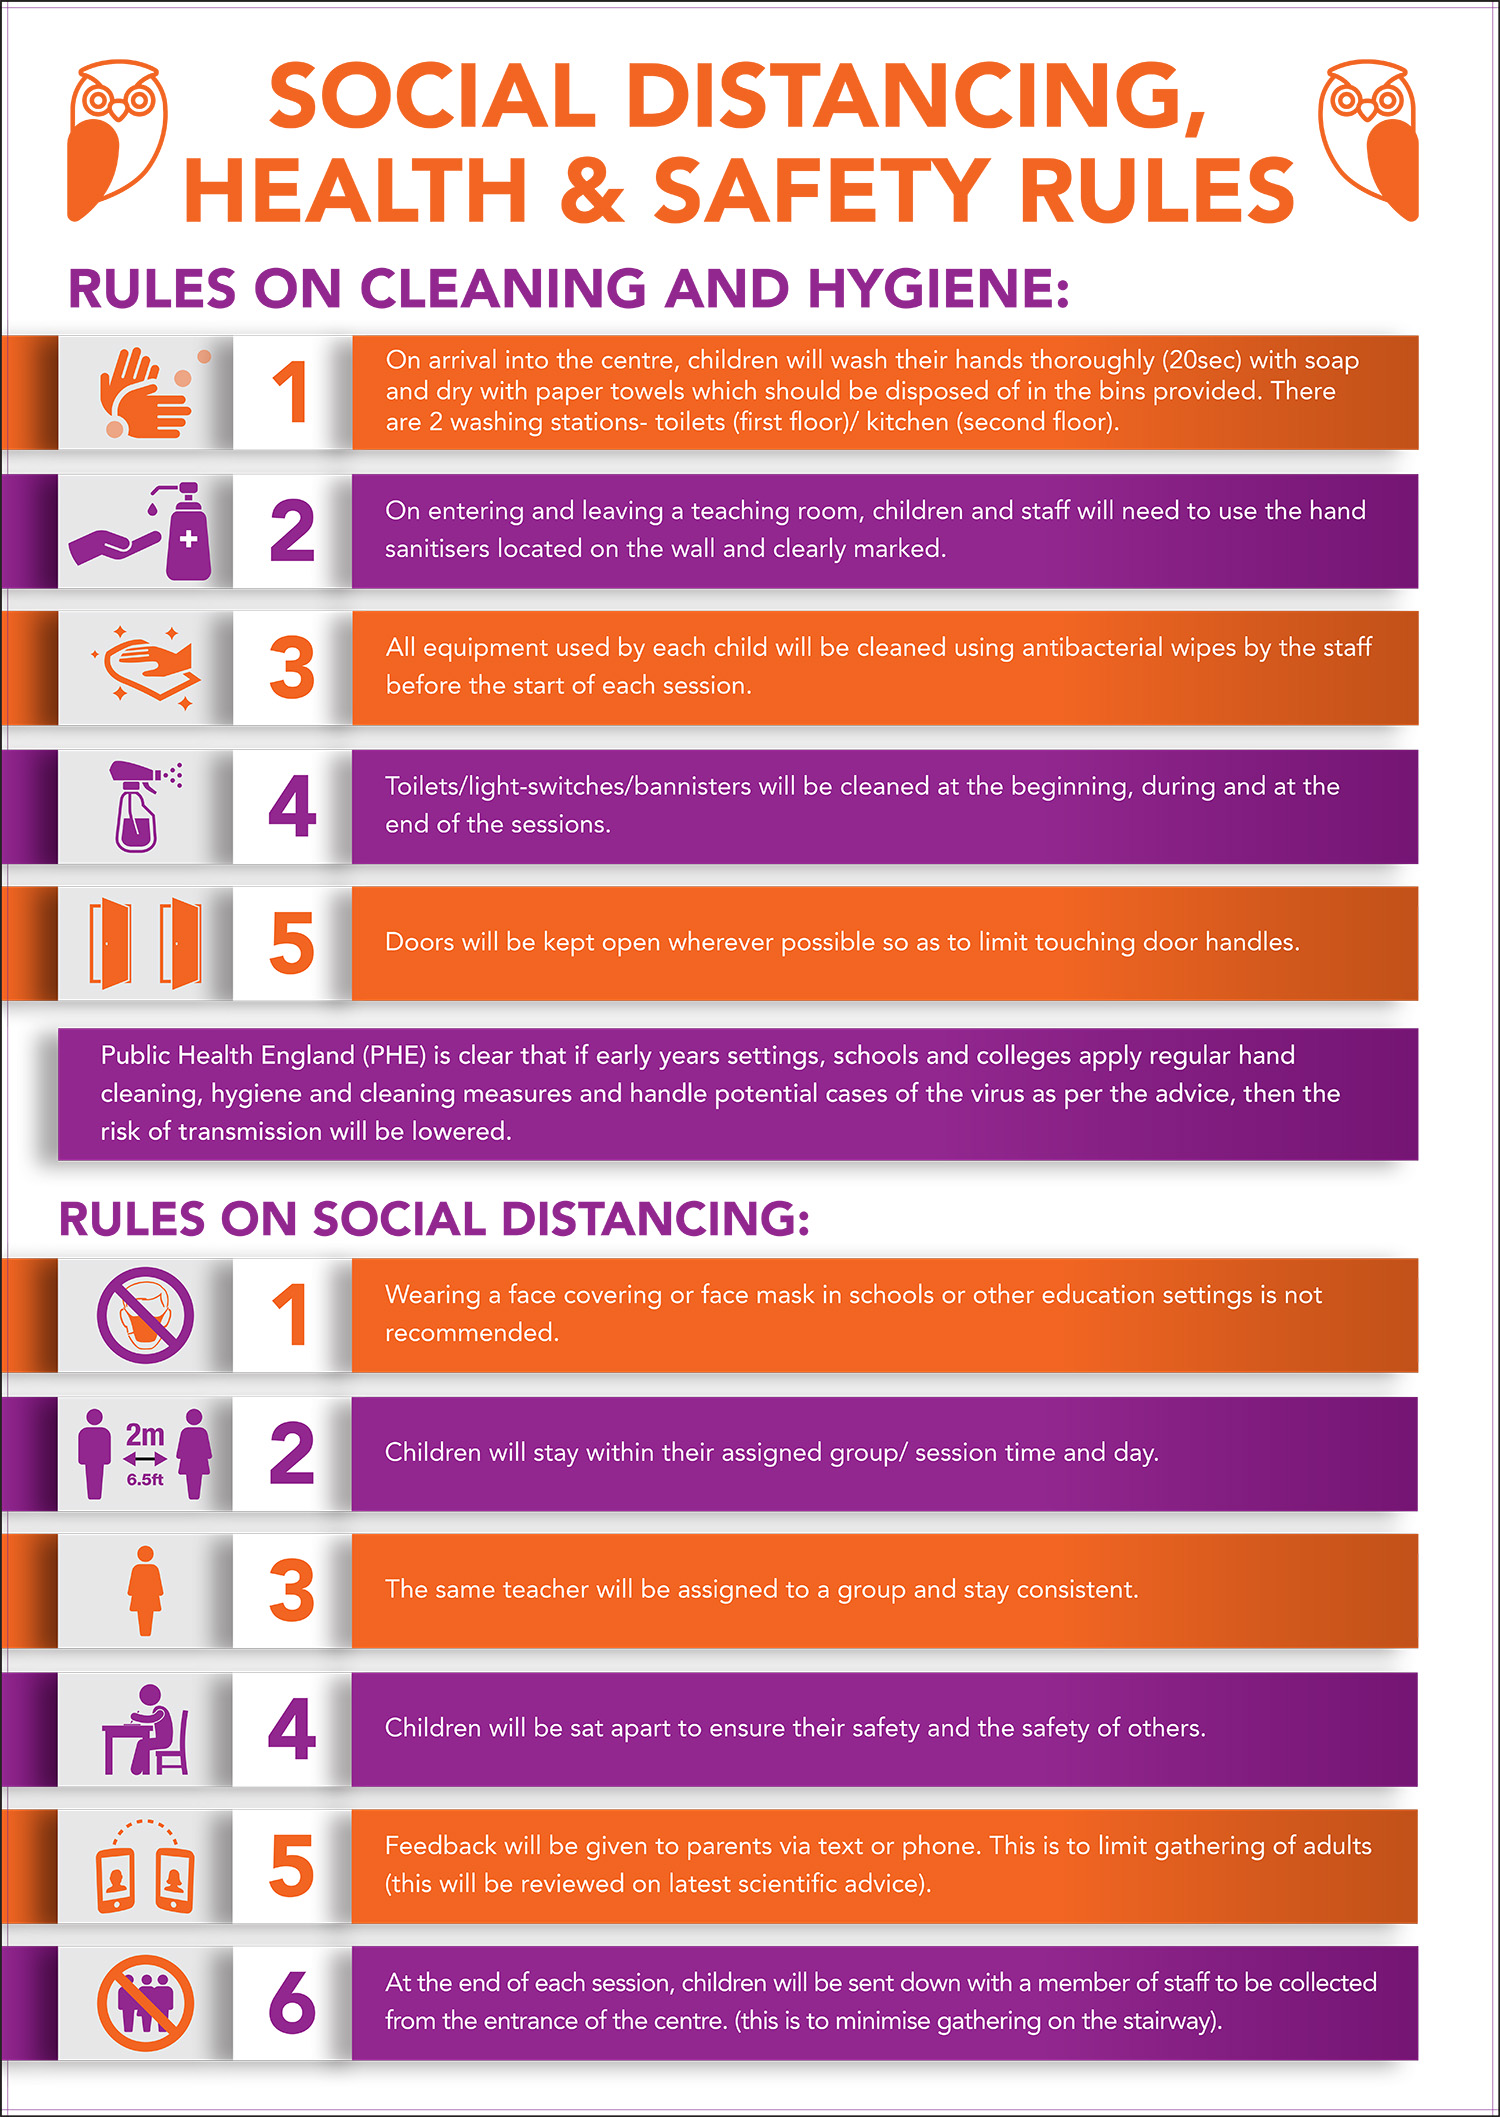 social distancing health and safety rules